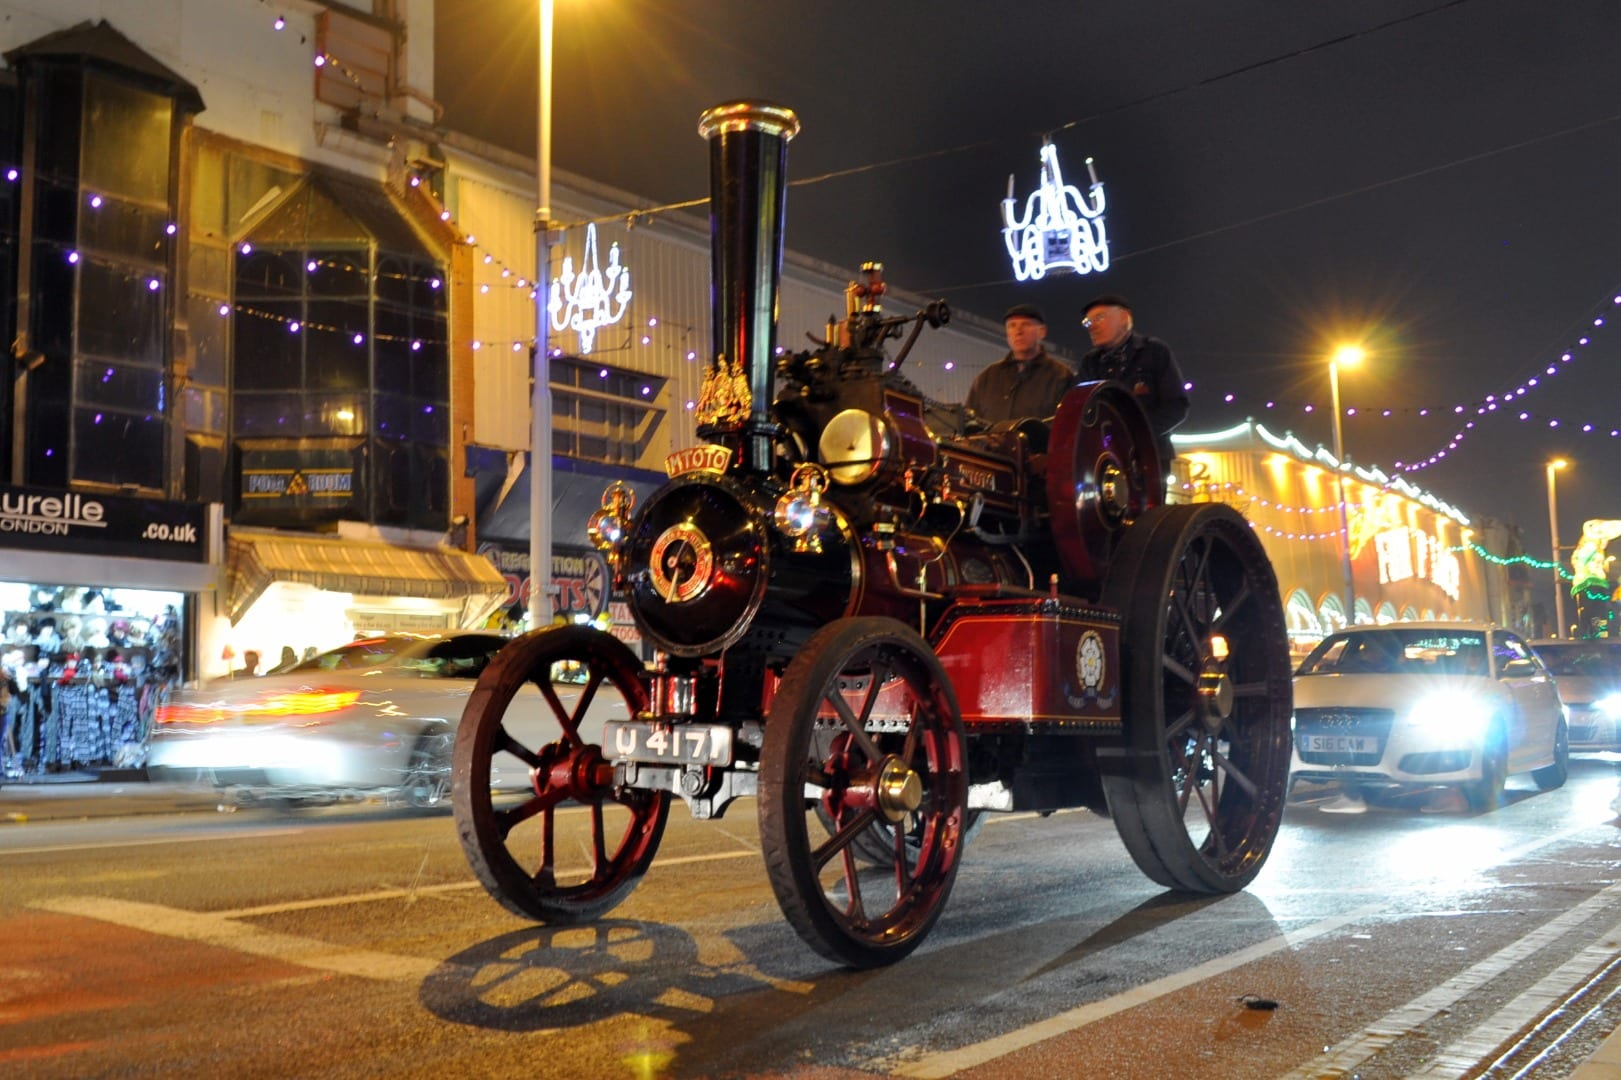 Fowler traction engine named 'MTOTO' No. 14406 dating from 1917 competes with the promenade traffic on the Saturday evening 3rd October.